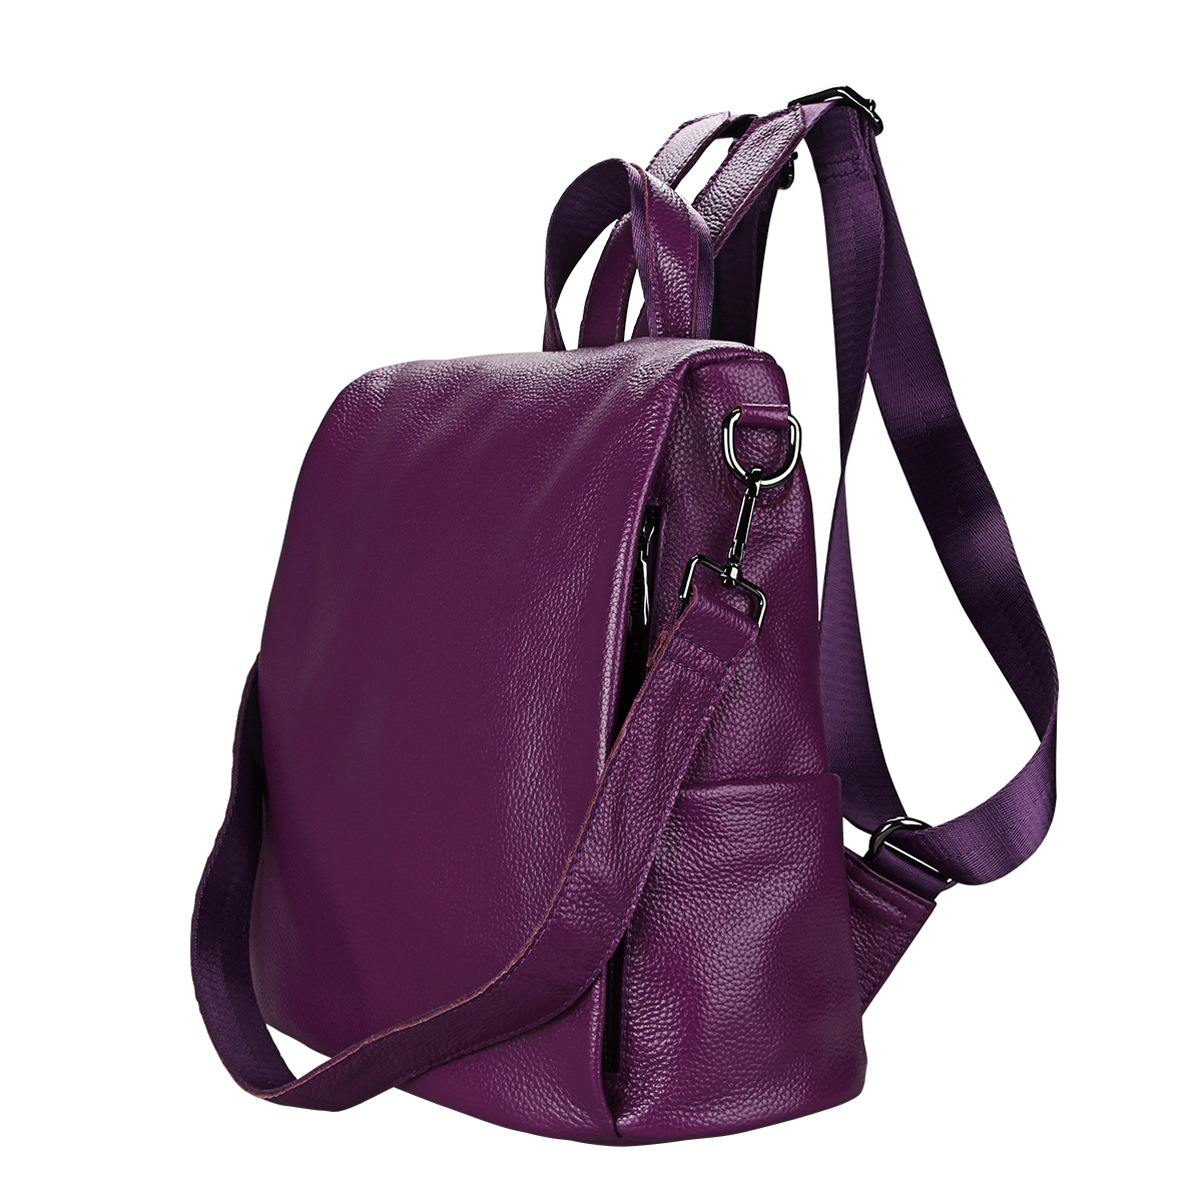 Solid Genuine Leather Teenage College Grils Backpack High Quality Women Stylish Chic Travel Backpack Female Fashion Shoulder Bag stylish women s solid color pleated culotte